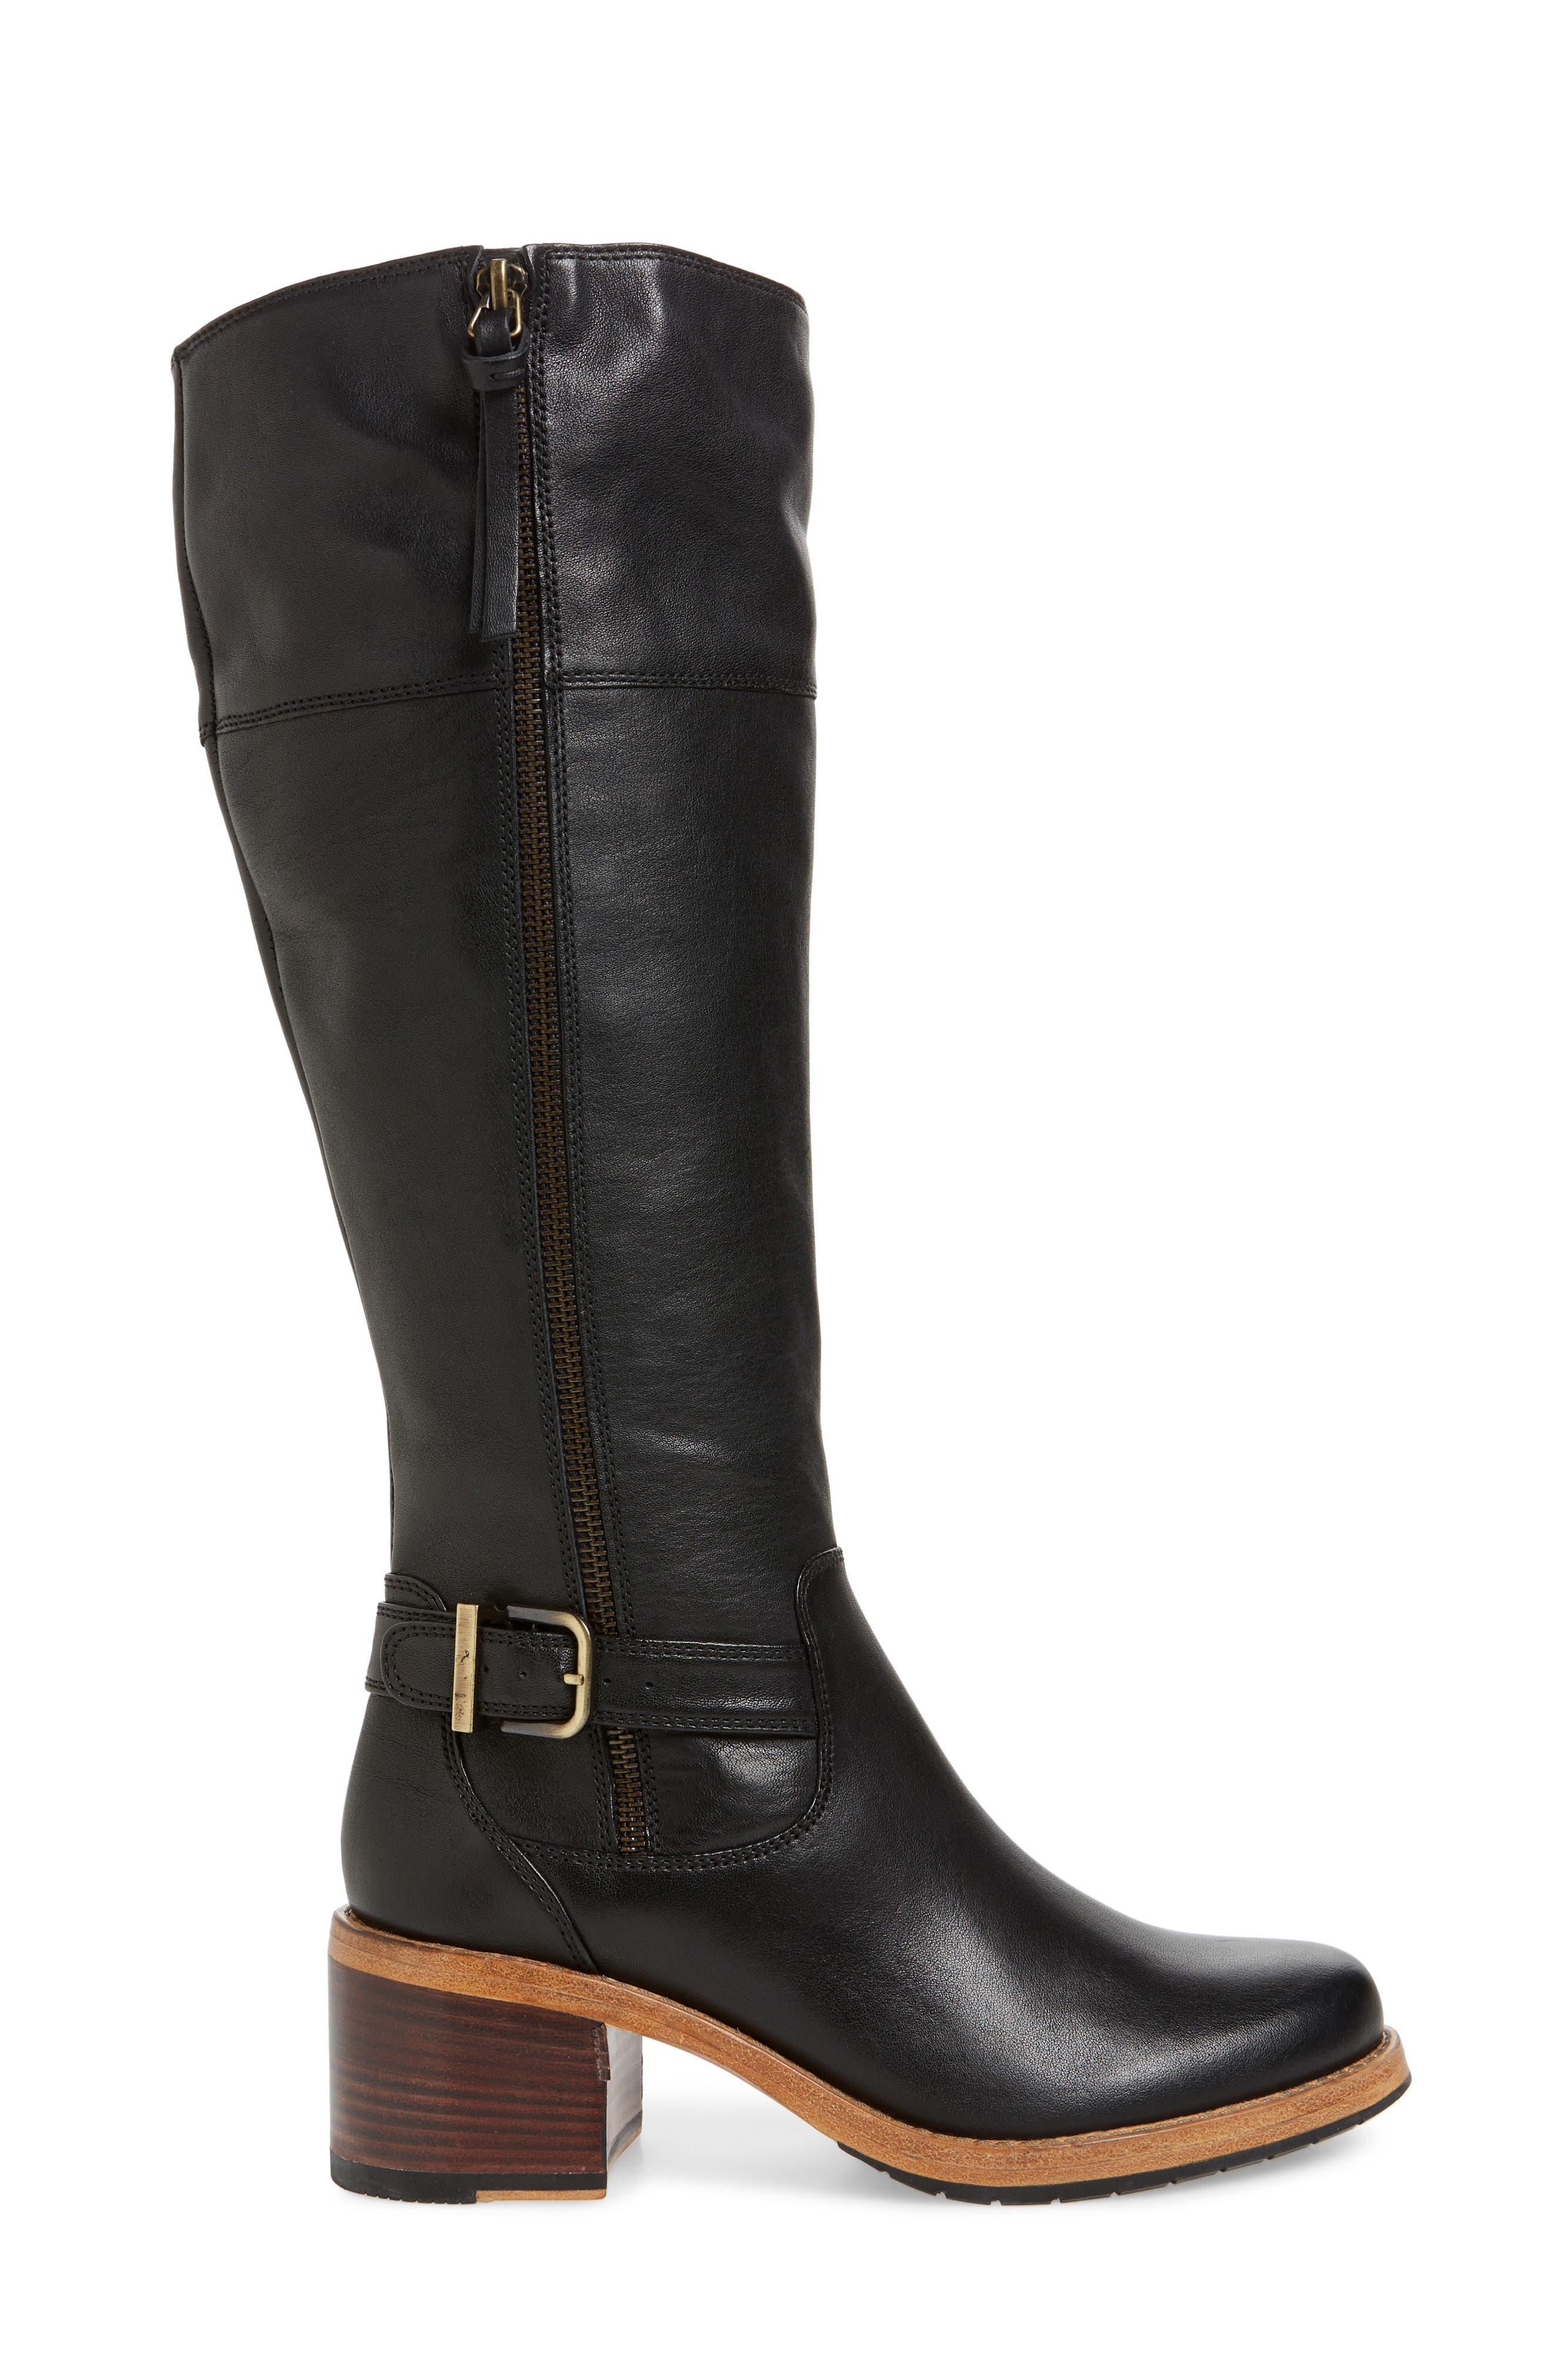 CLARKS<SUP>®</SUP>, Clarkdale Sona Boot, Alternate thumbnail 3, color, BLACK LEATHER